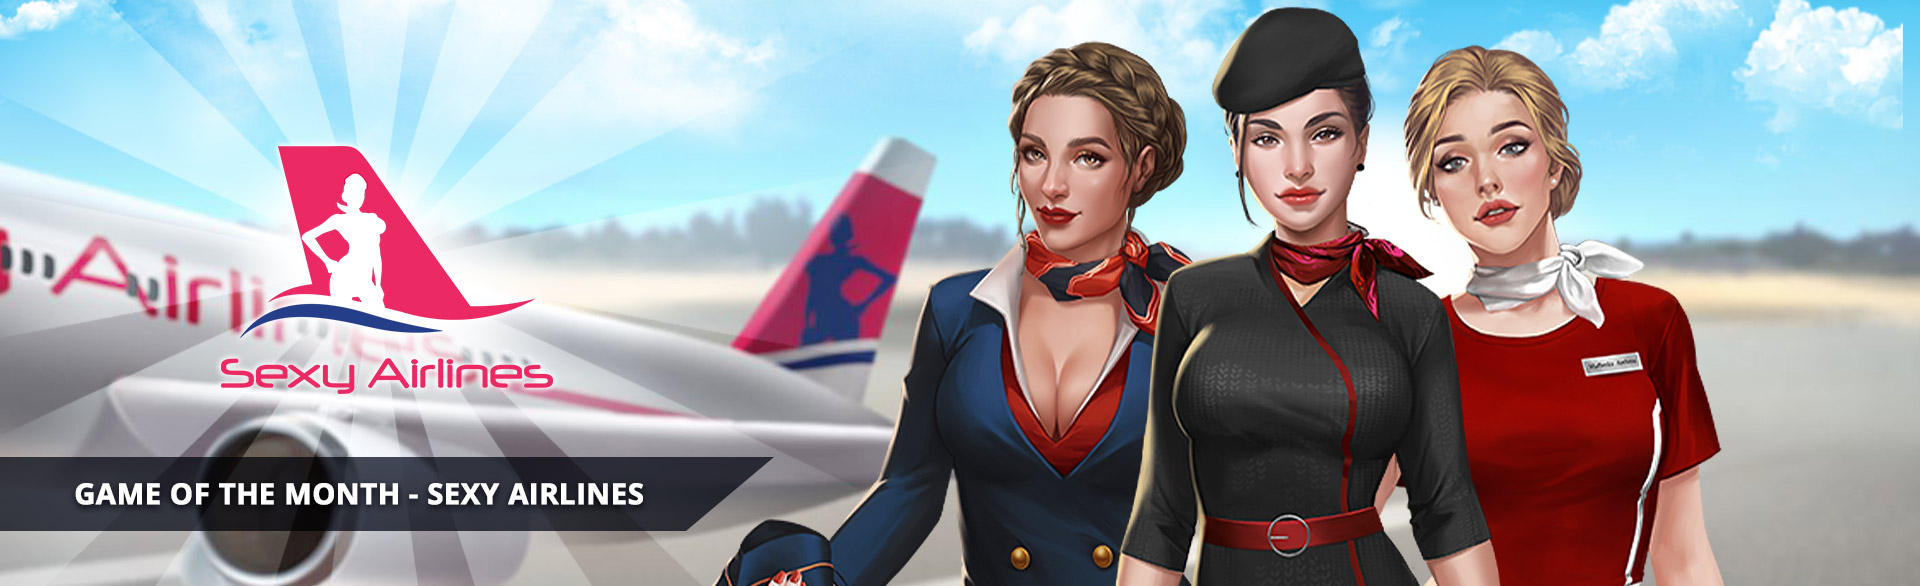 Sexy Airlines hentai game